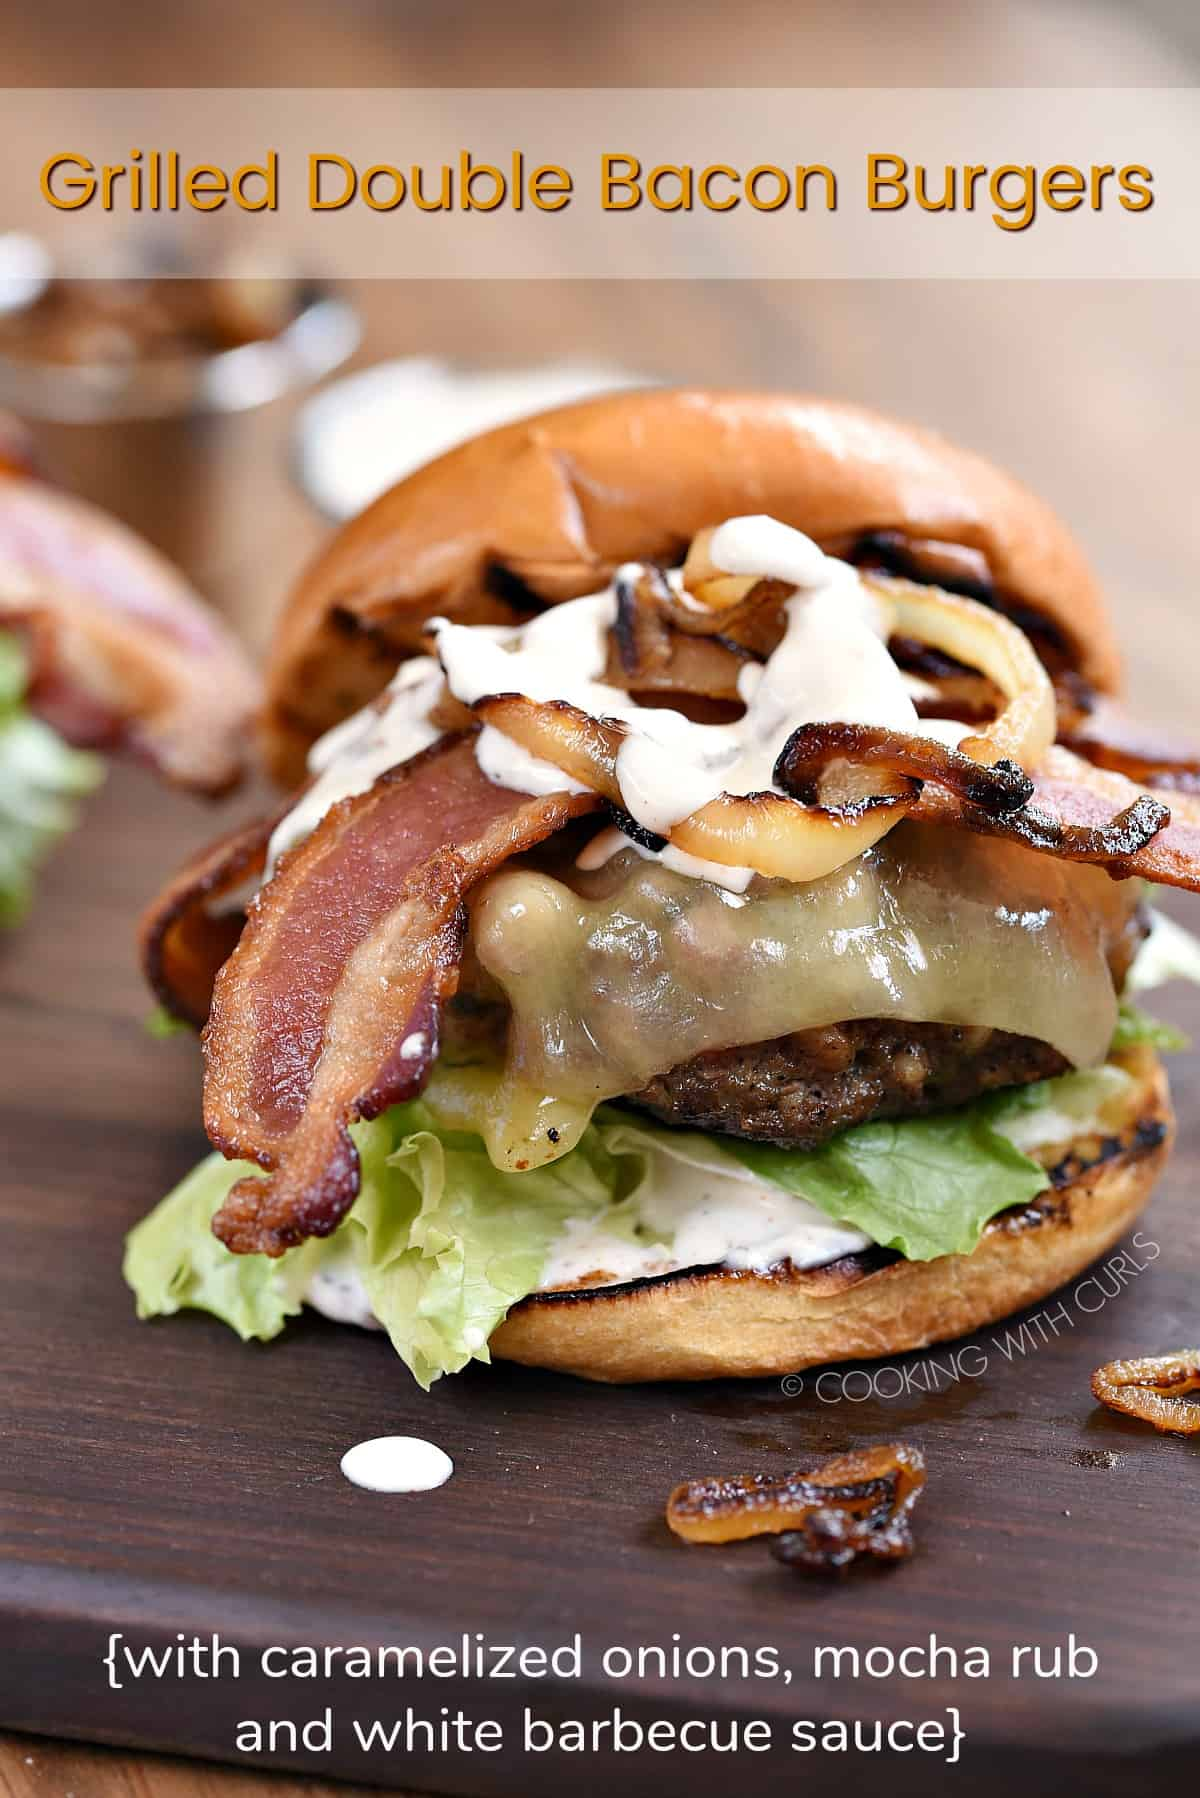 Grilled Double Bacon Burgers on grilled buns, topped with lettuce, tomato, caramelized onions and white barbecue sauce sitting on a wood board with a title graphic across the top.